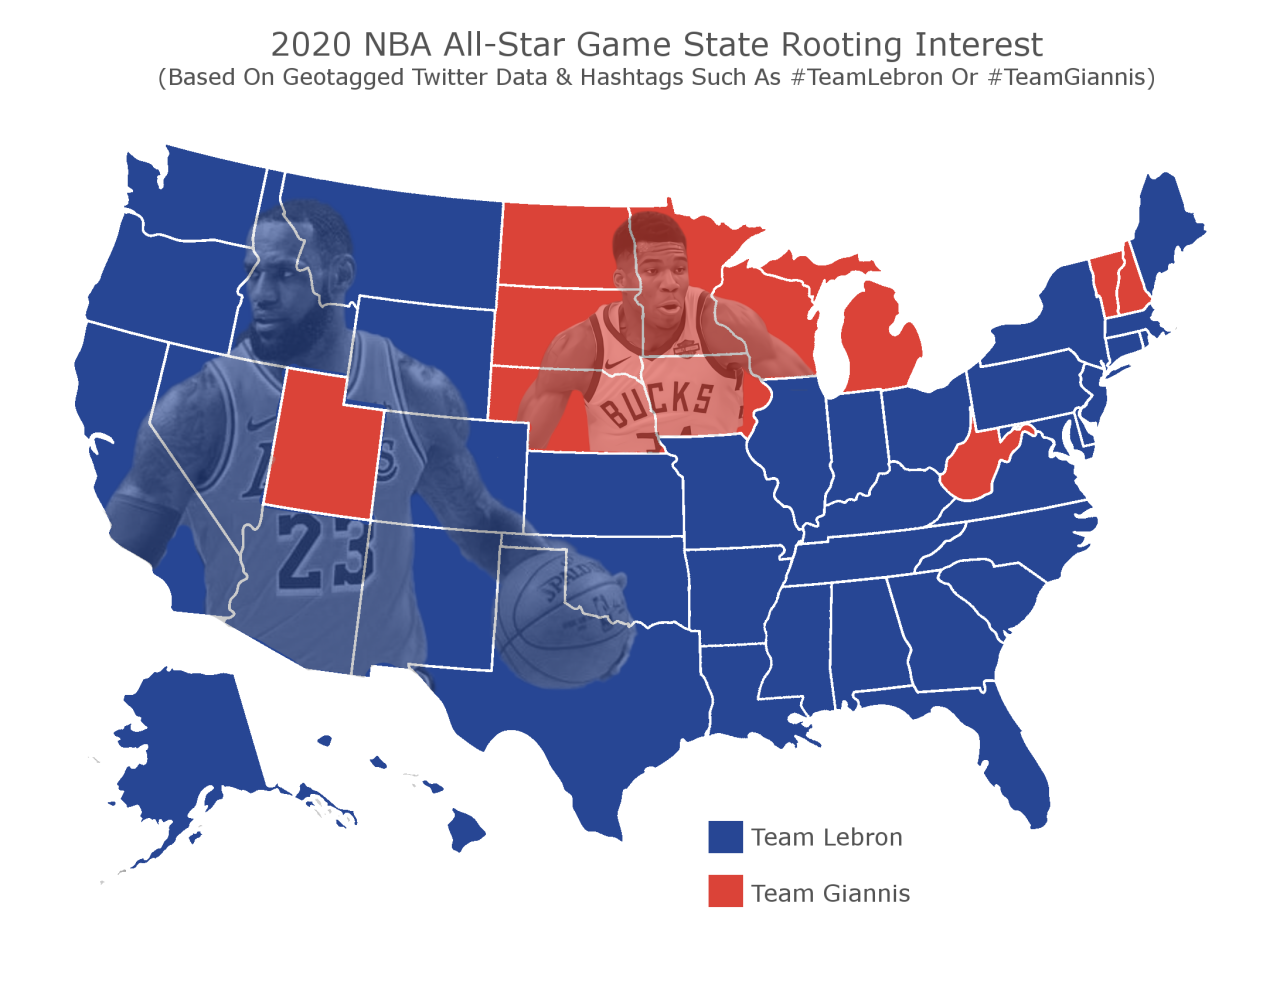 2020 NBA All-Star Map.PNG